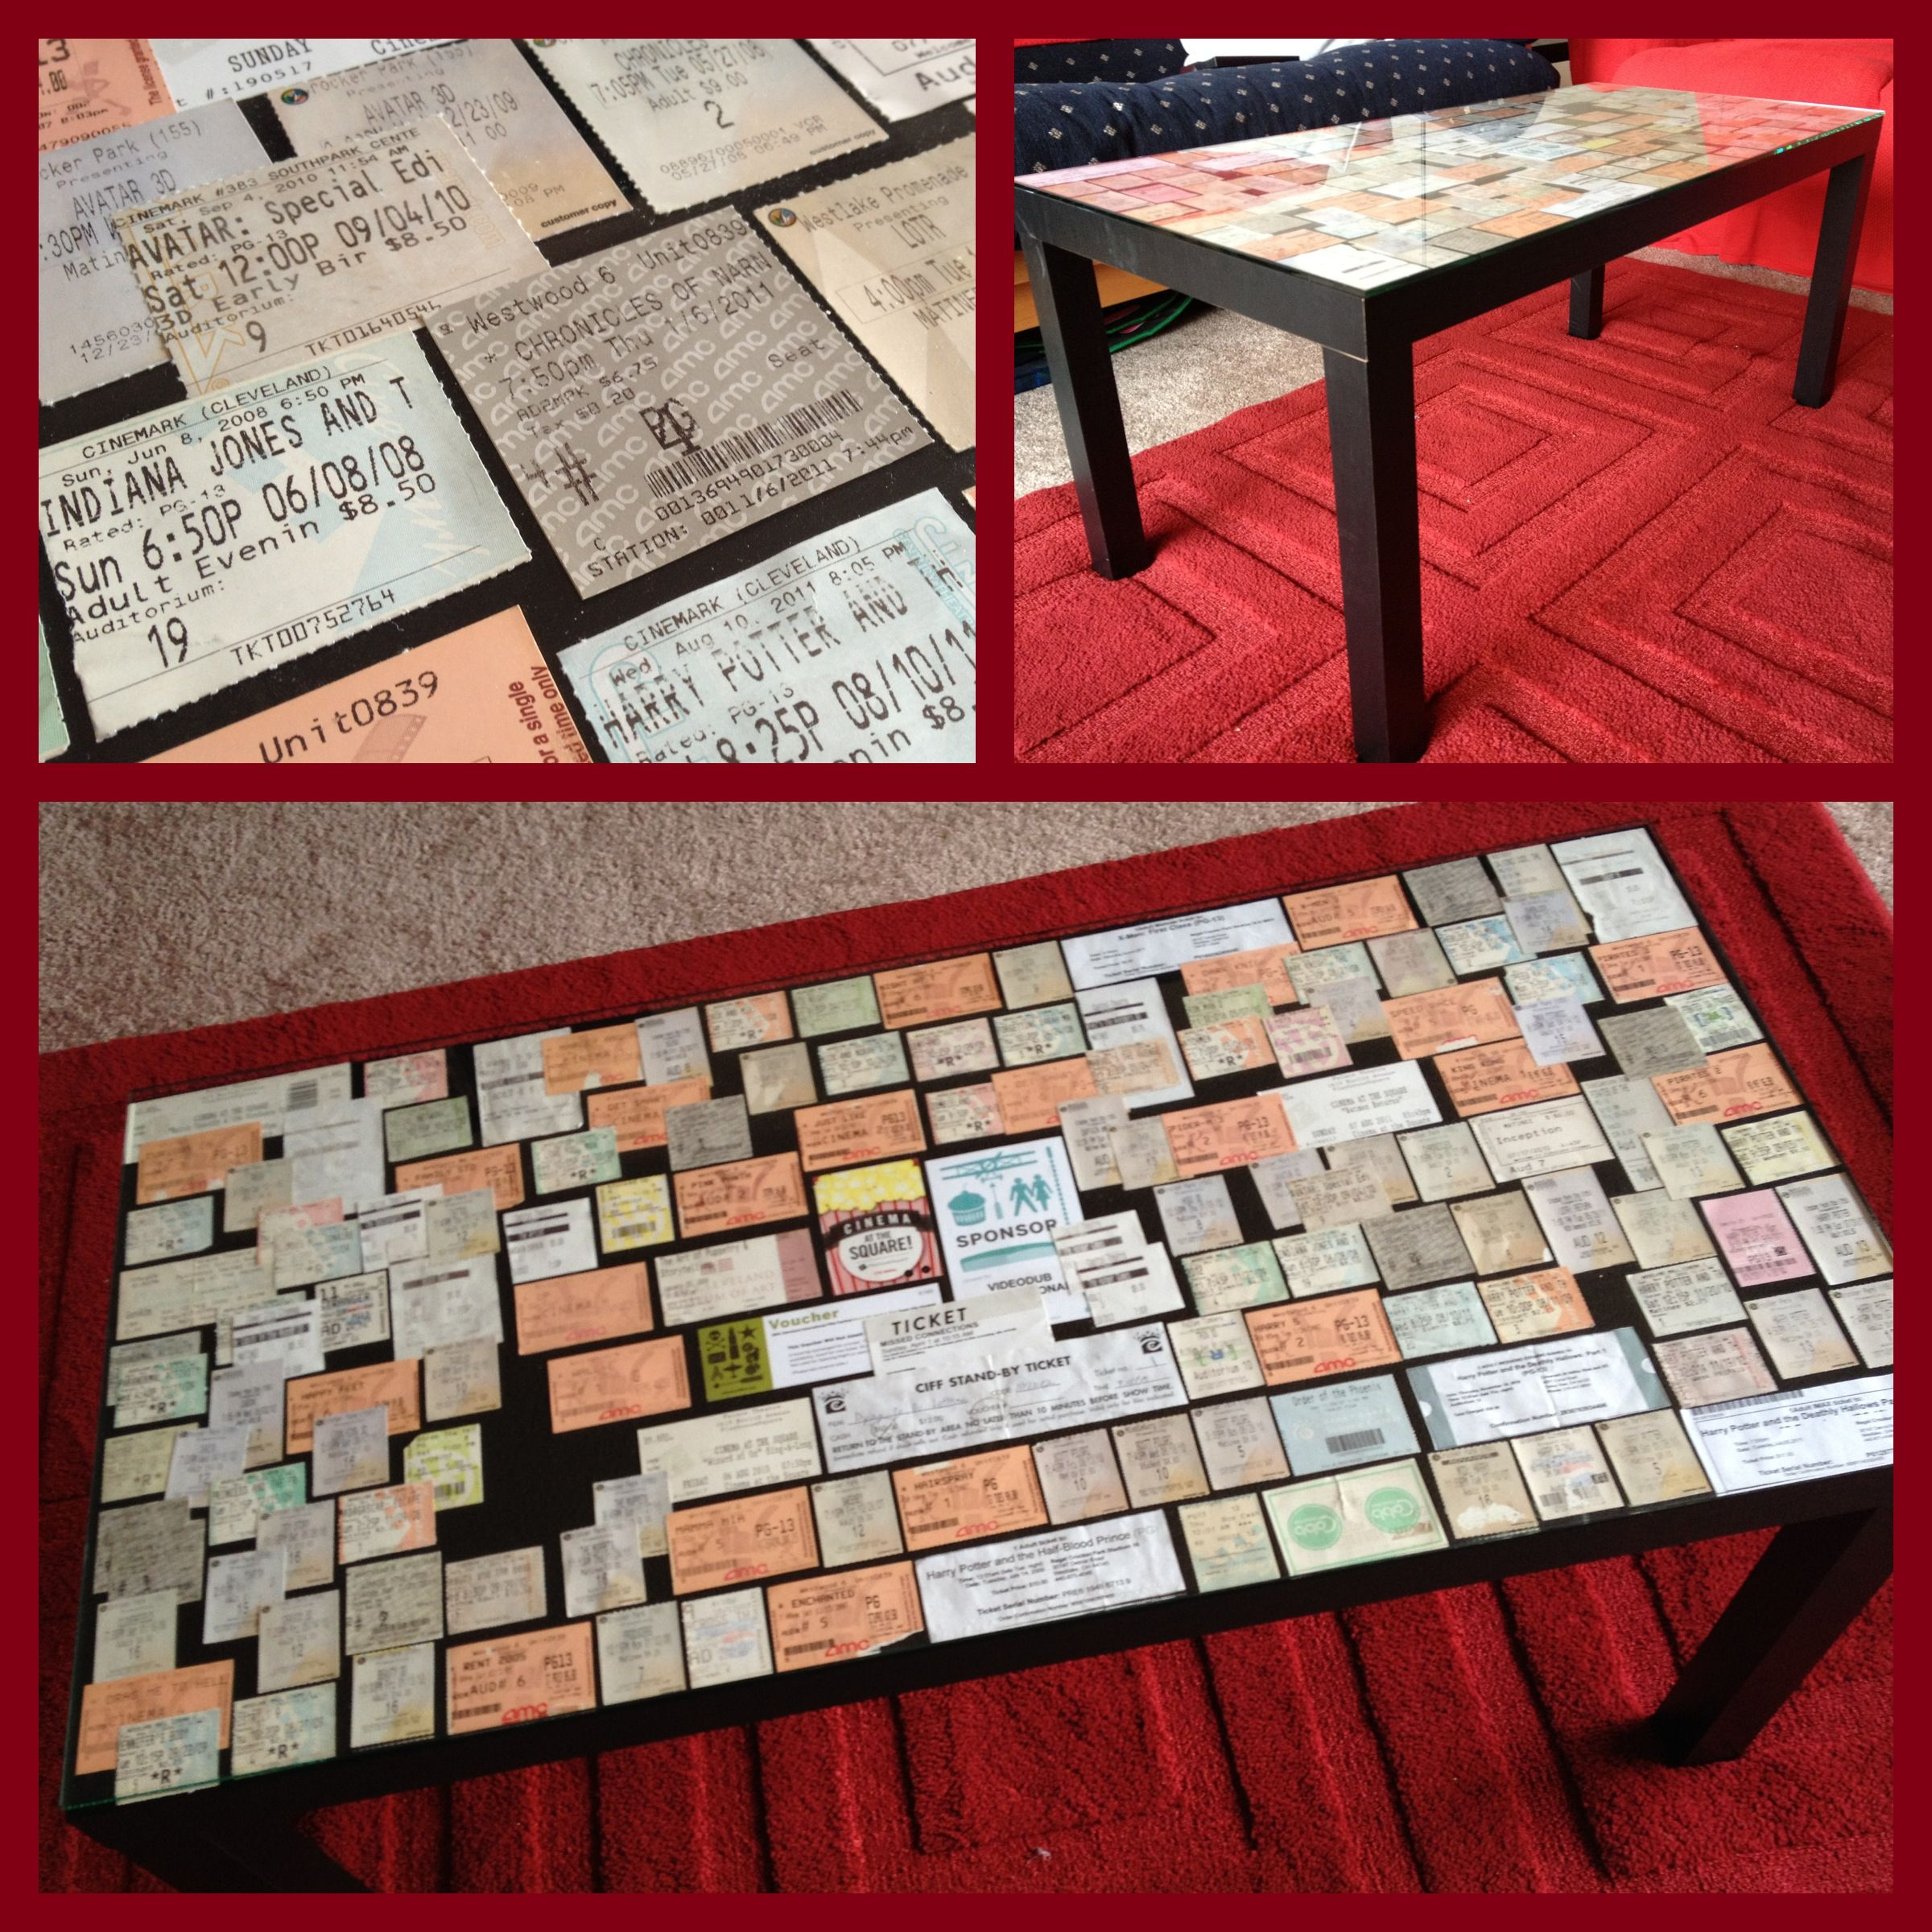 movie ticket stub wedding invitation%0A coffee table covered with movie ticket stubs   made by  J  P  Gagen